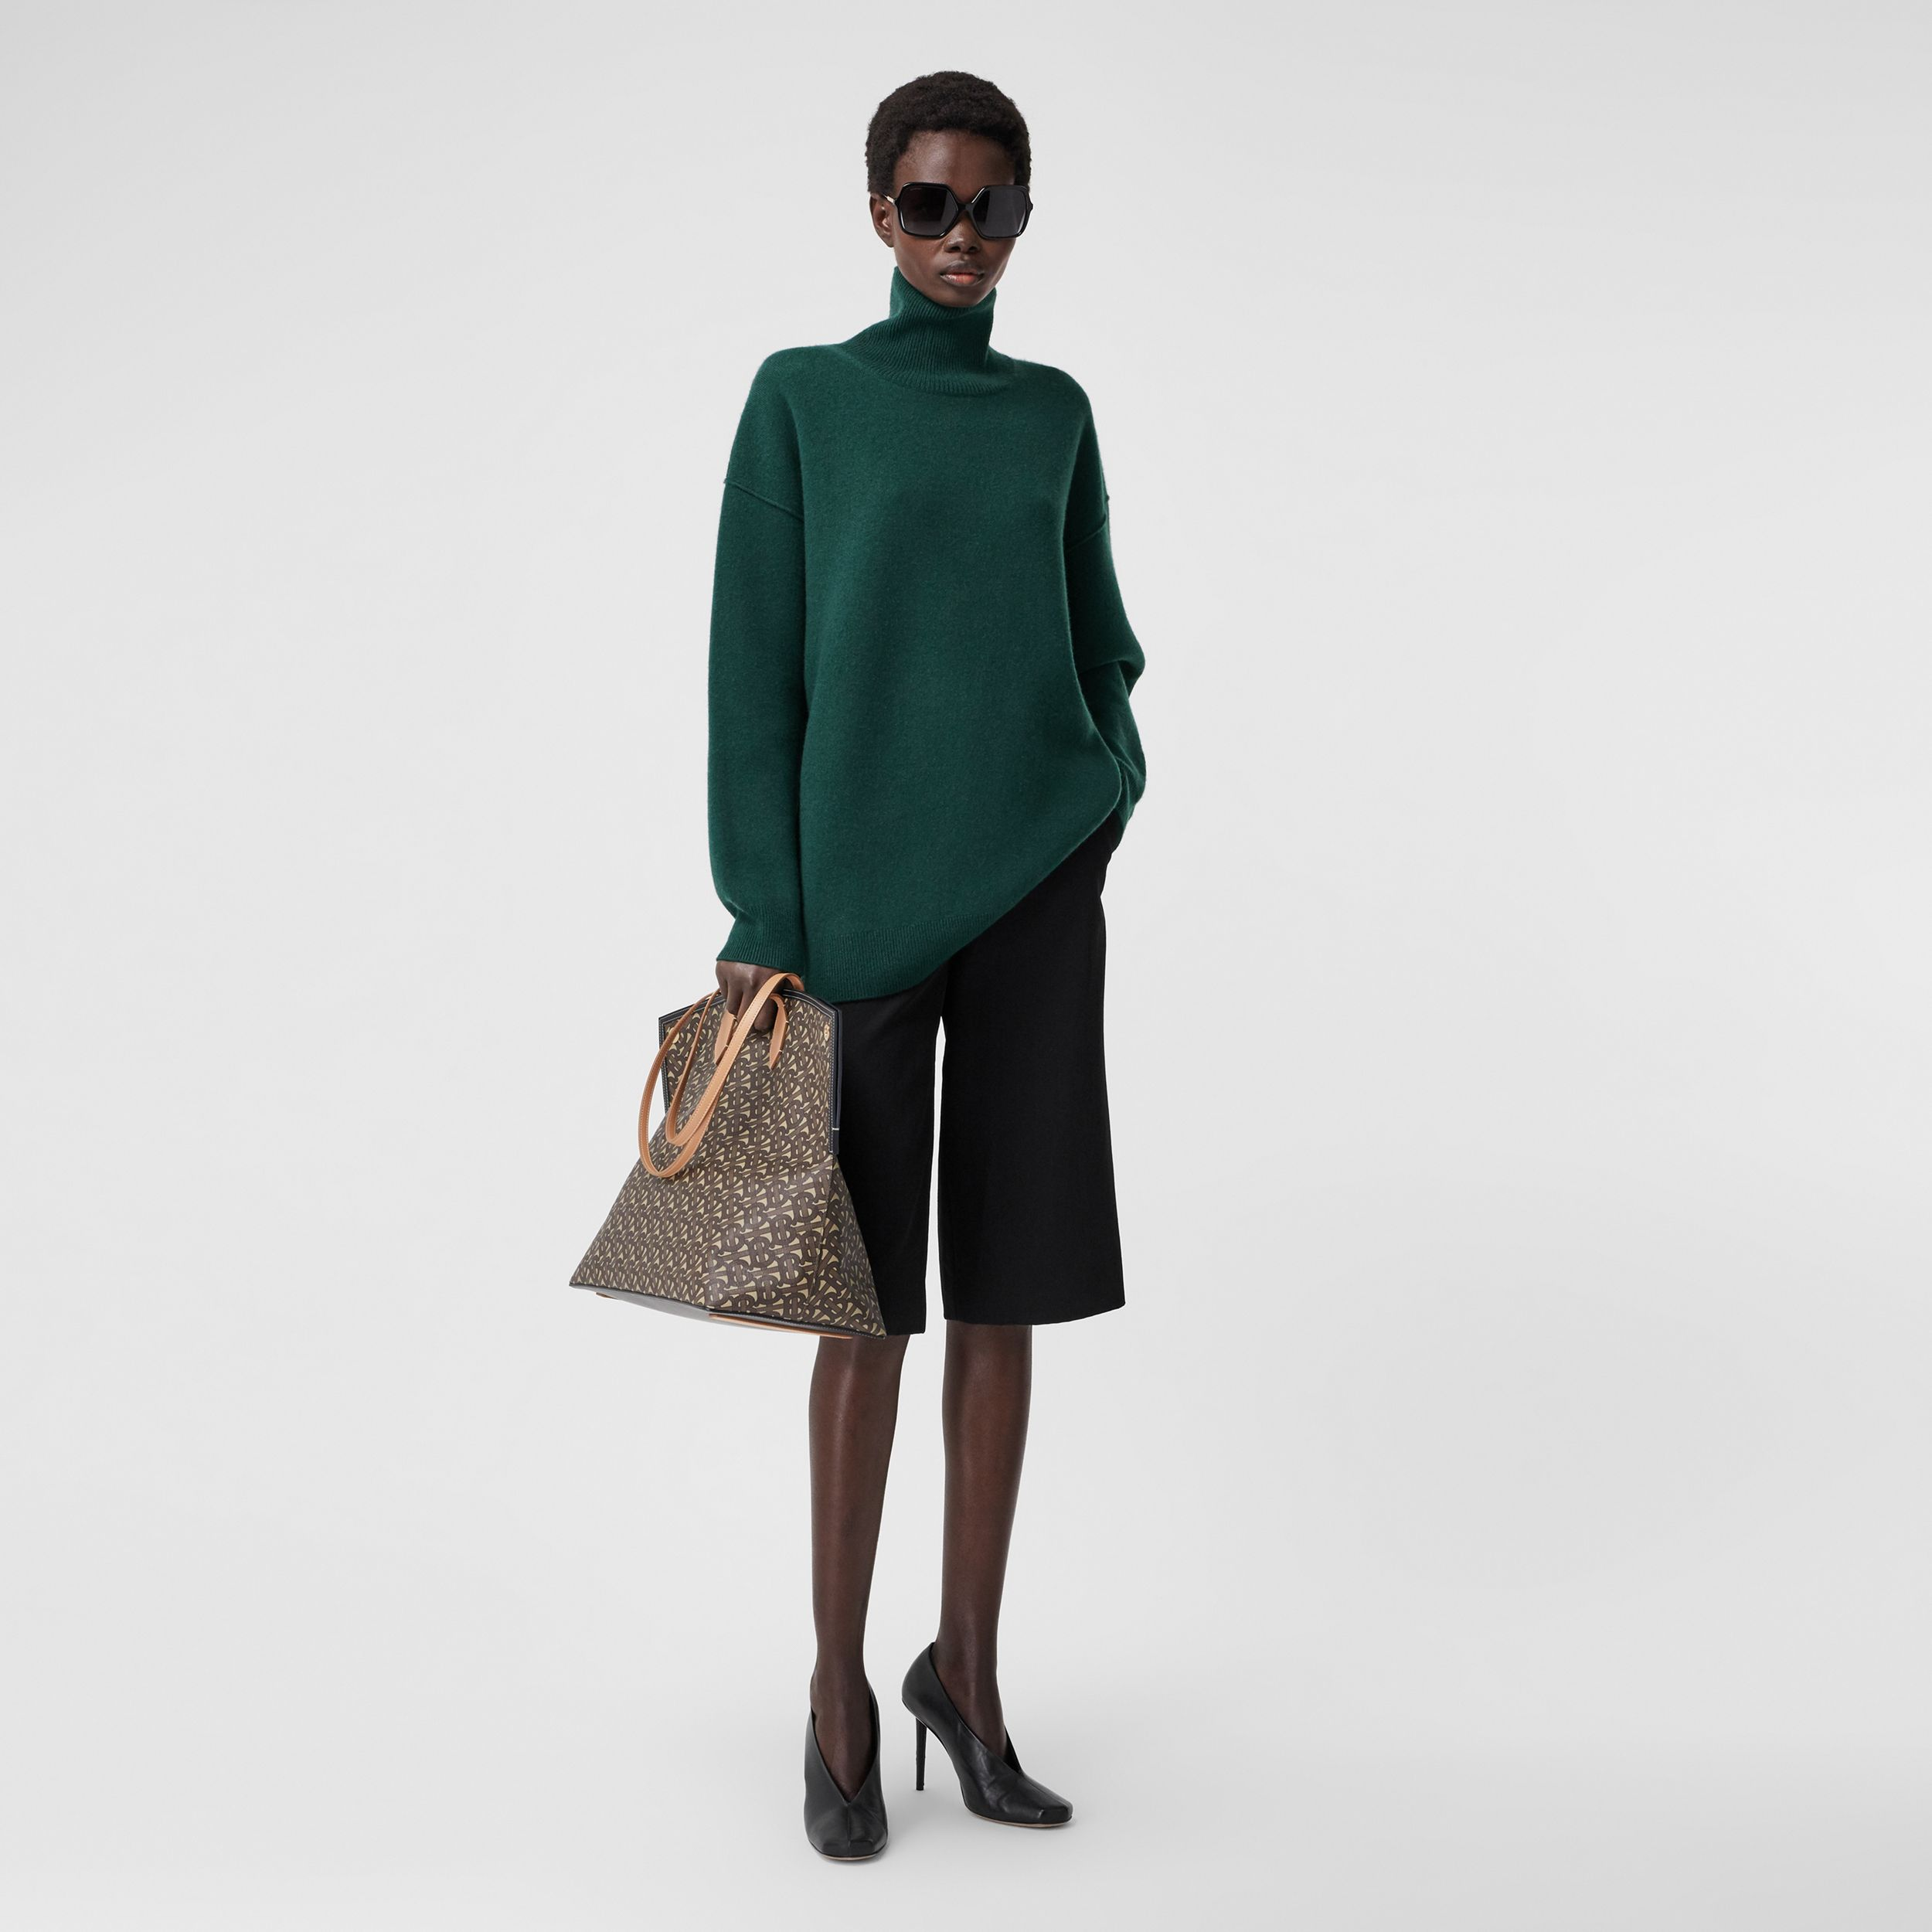 Monogram Motif Cashmere Blend Funnel Neck Sweater in Bottle Green - Women | Burberry Hong Kong S.A.R. - 1